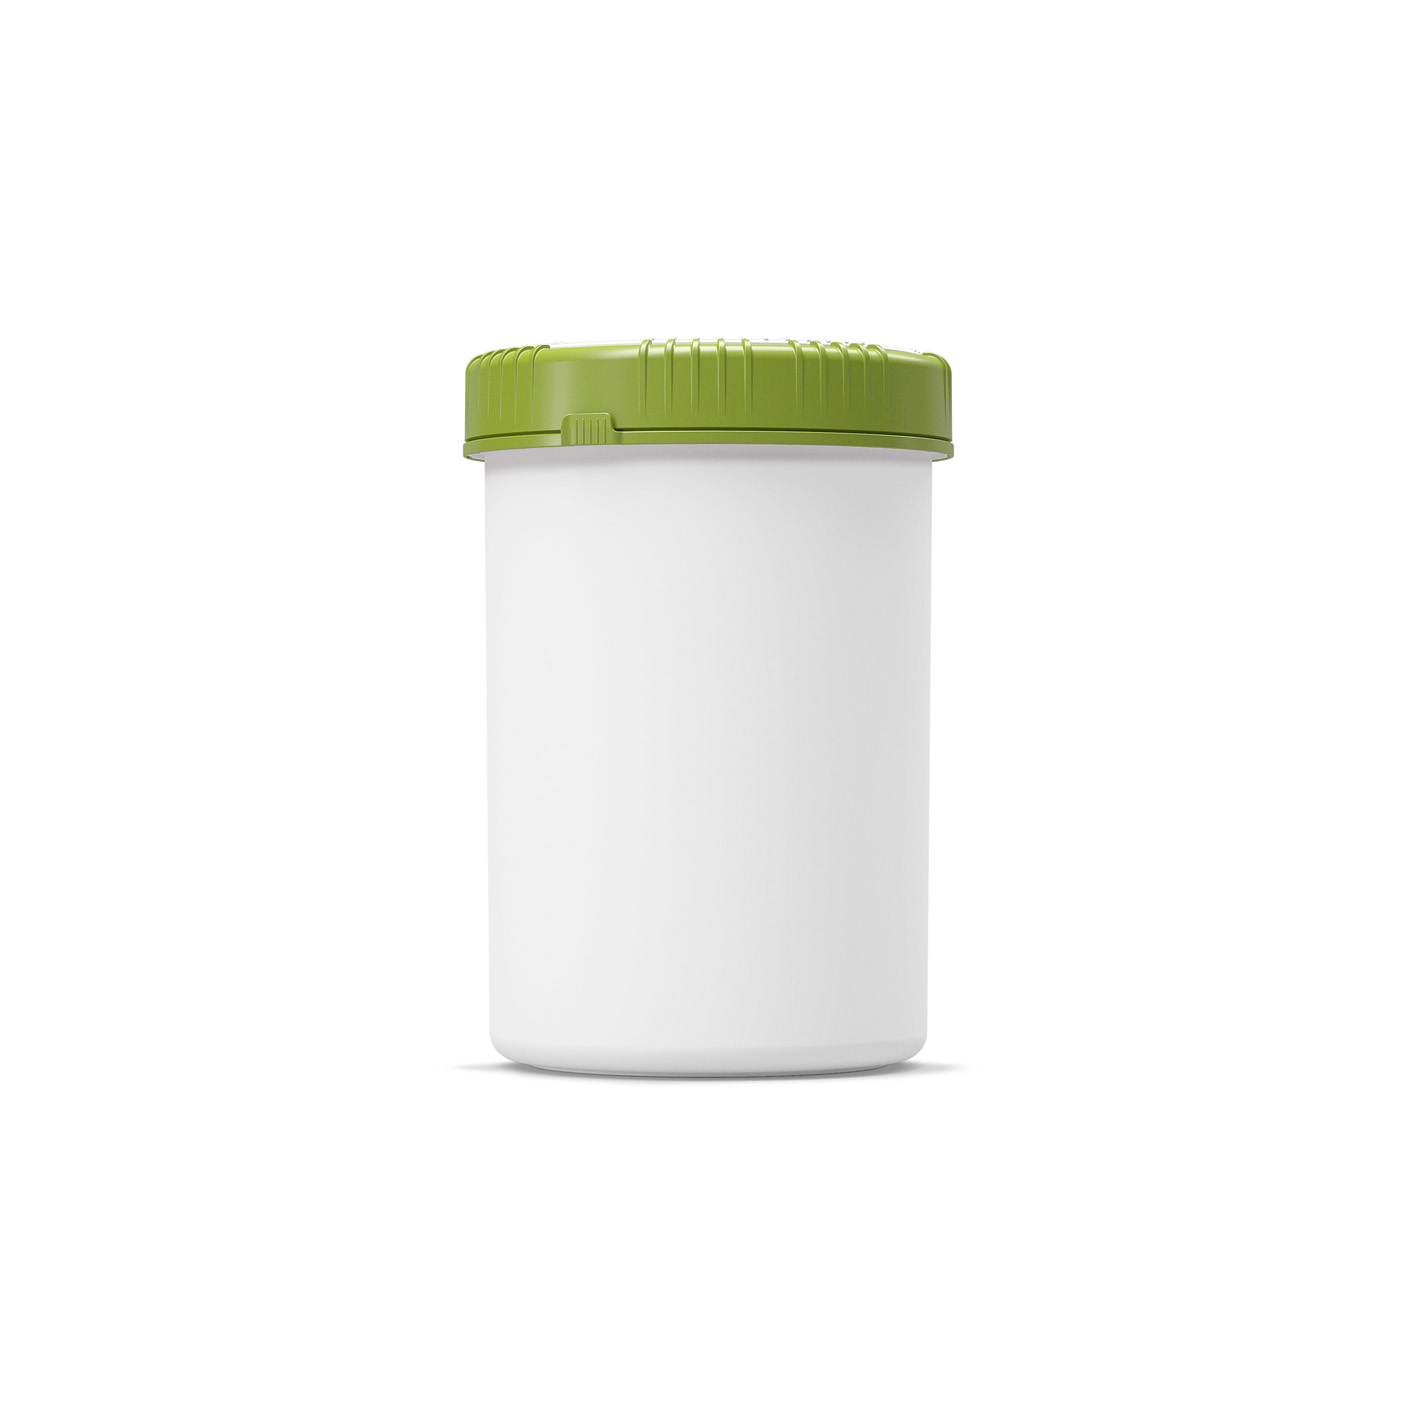 1000 ml Biobased Packo